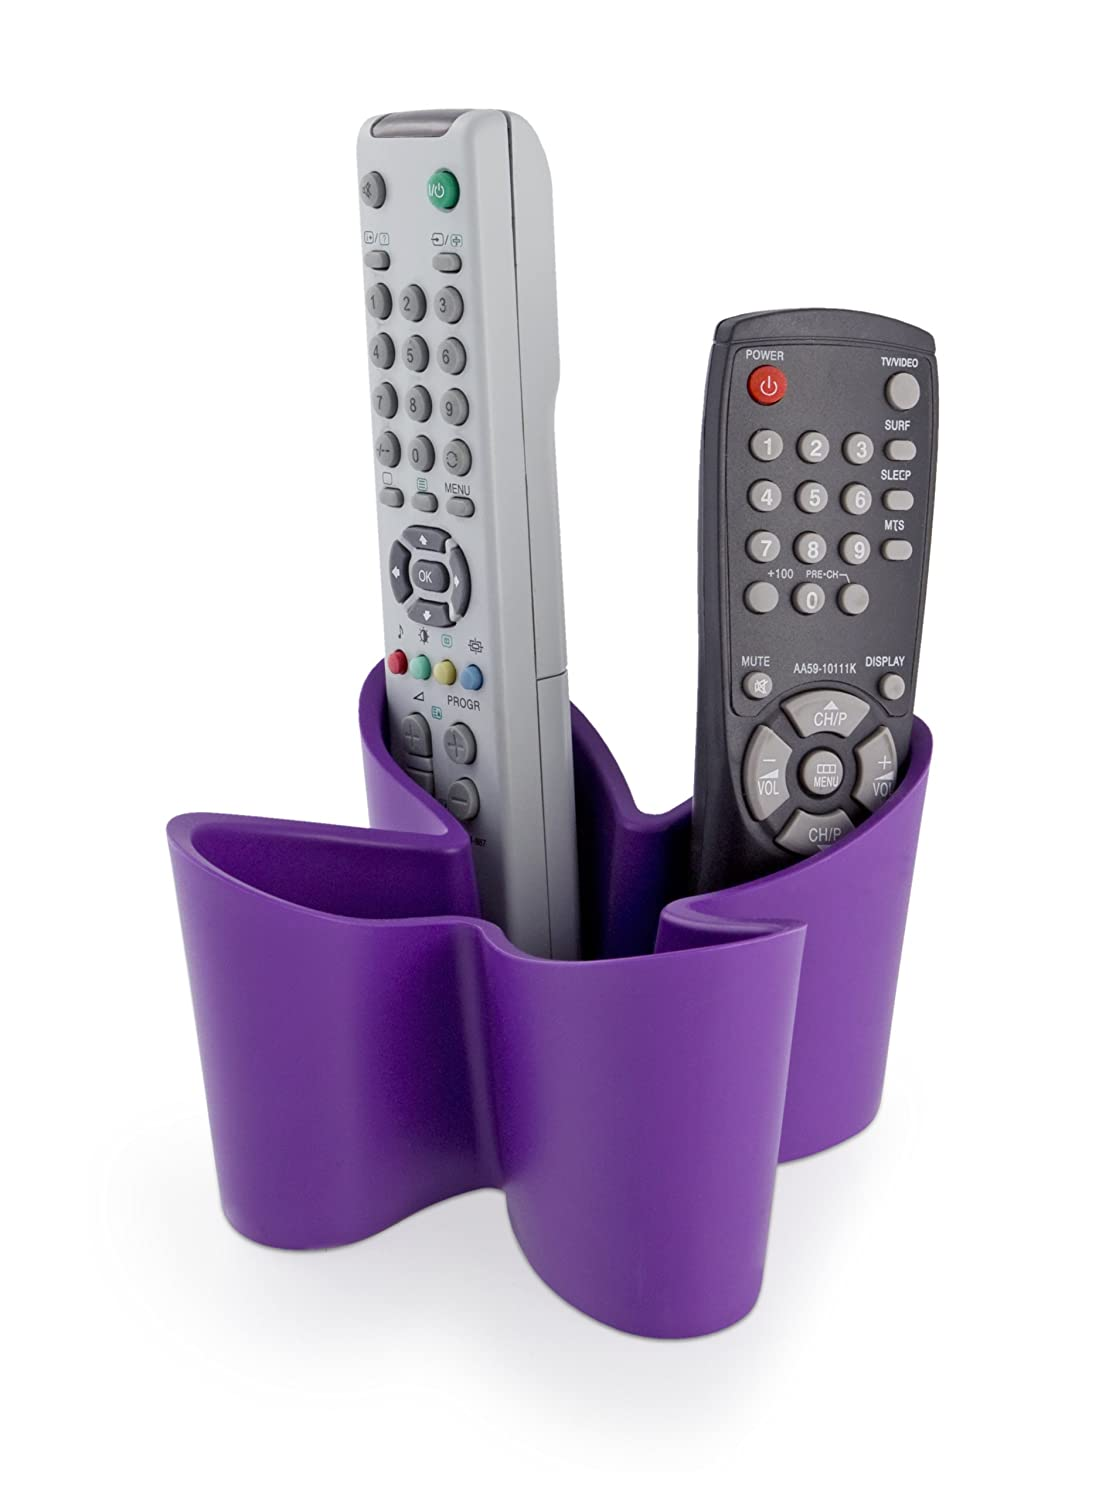 j-me original design Non Slip Rubber Cozy Remote Control Tidy, Purple 5060105290046